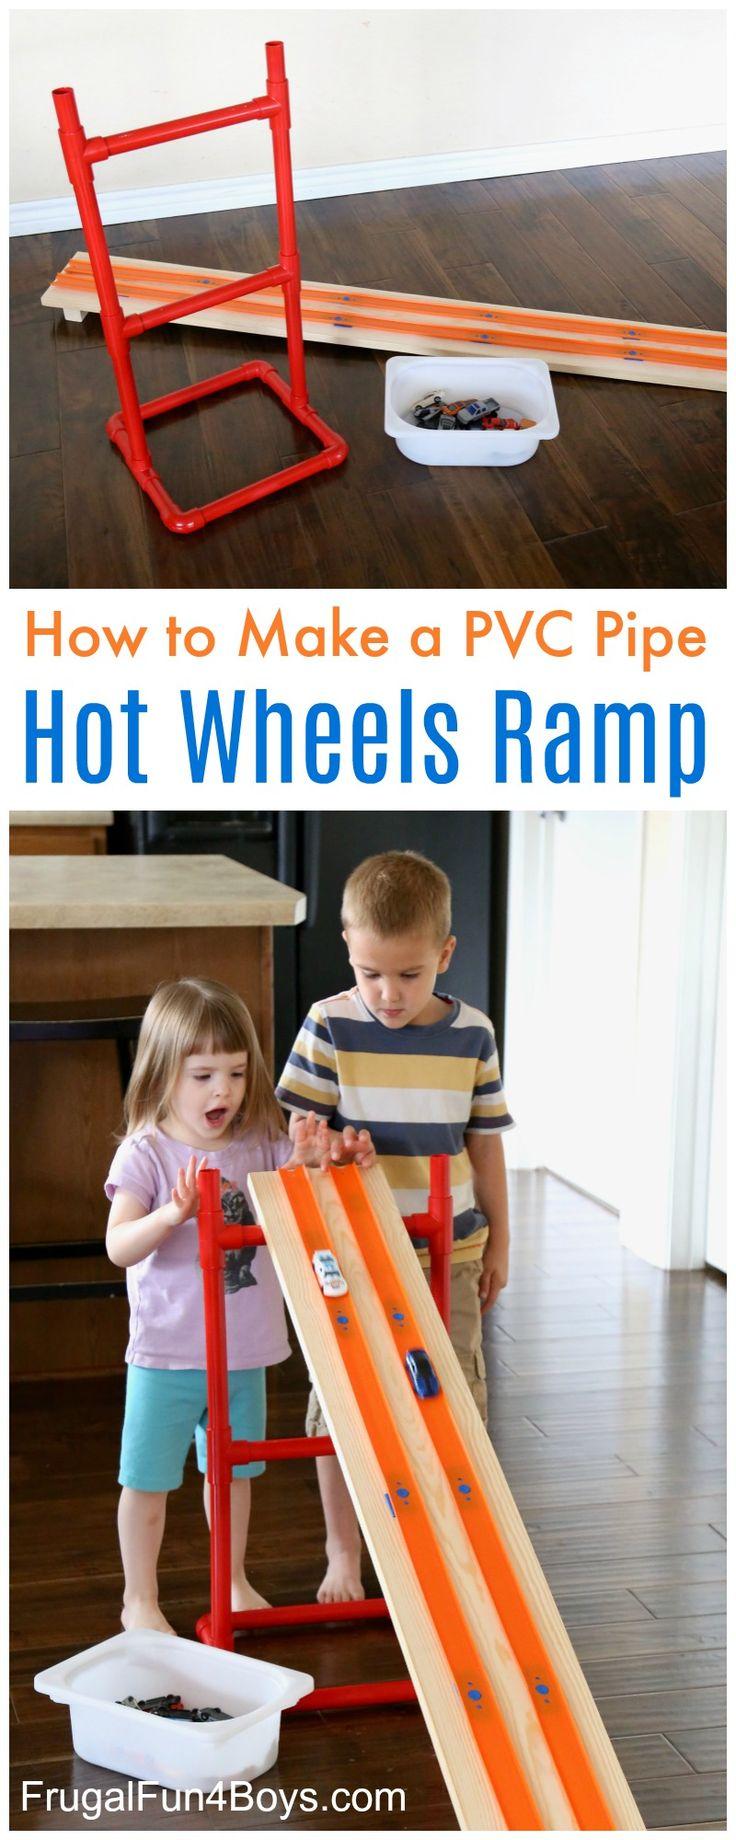 This fun ramp will take your Hot Wheels race tracks to a whole new level – literally!  The boys love building Hot Wheels tracks on the hard floor, but it's challenging to keep a ramp from sliding across the floor.  Here's a simple solution that will get played with again and again! The design of …